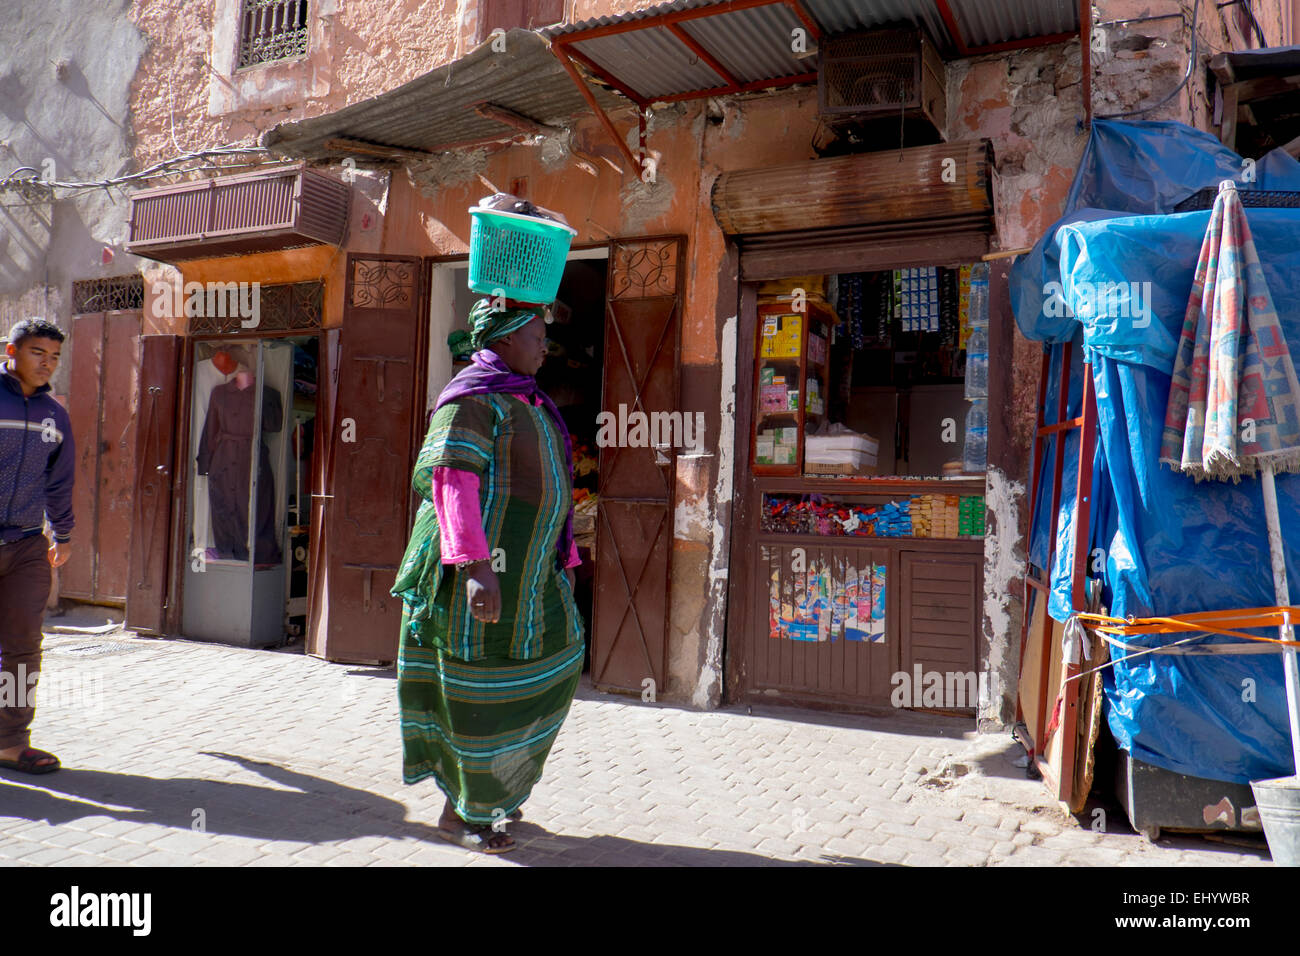 Cool African Traditional Basket - woman-in-traditional-african-dress-carrying-basket-on-her-head-medina-EHYWBR  2018_207986.jpg